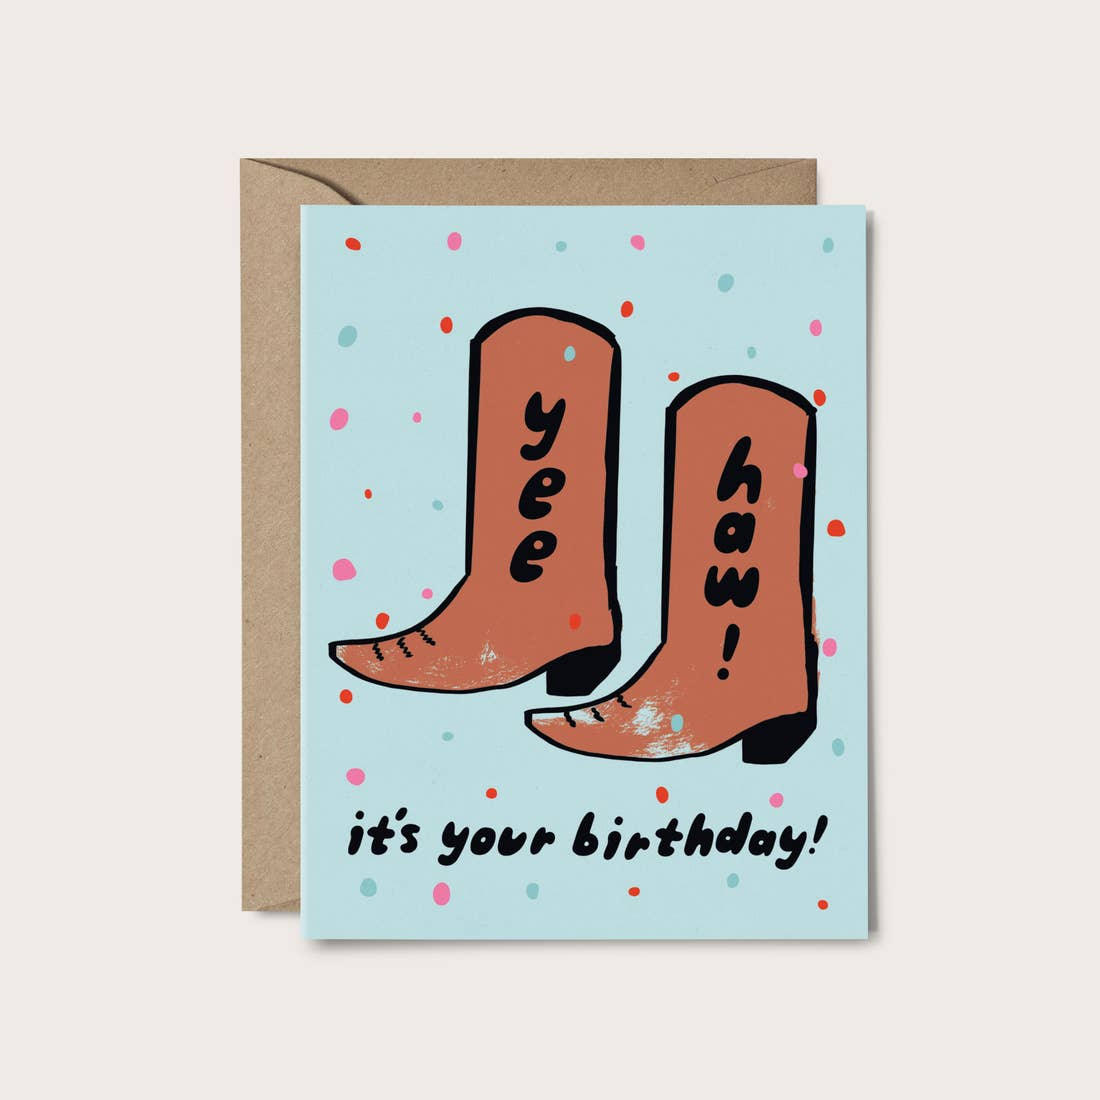 YEE HAW BIRTHDAY CARD